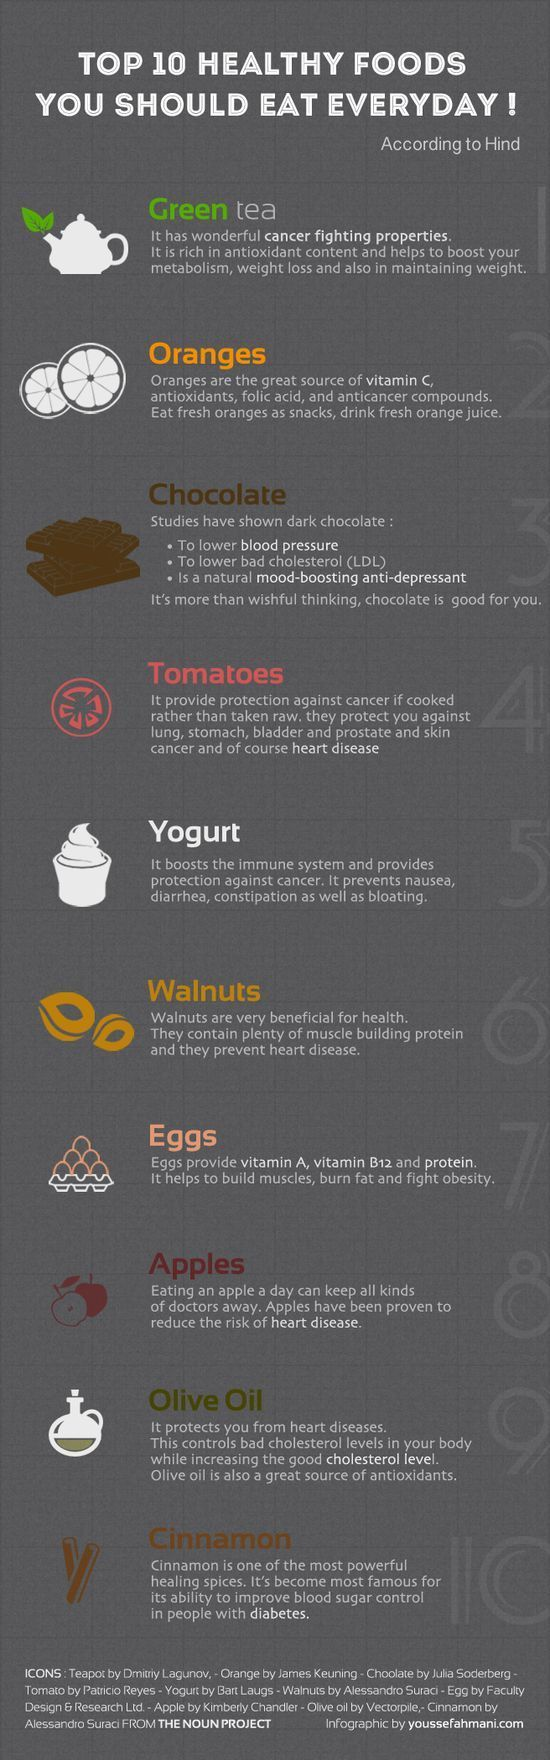 Top 10 HEALTHY foods you should eat EVERYDAY healthy meal ideas, healthy meals #healthy